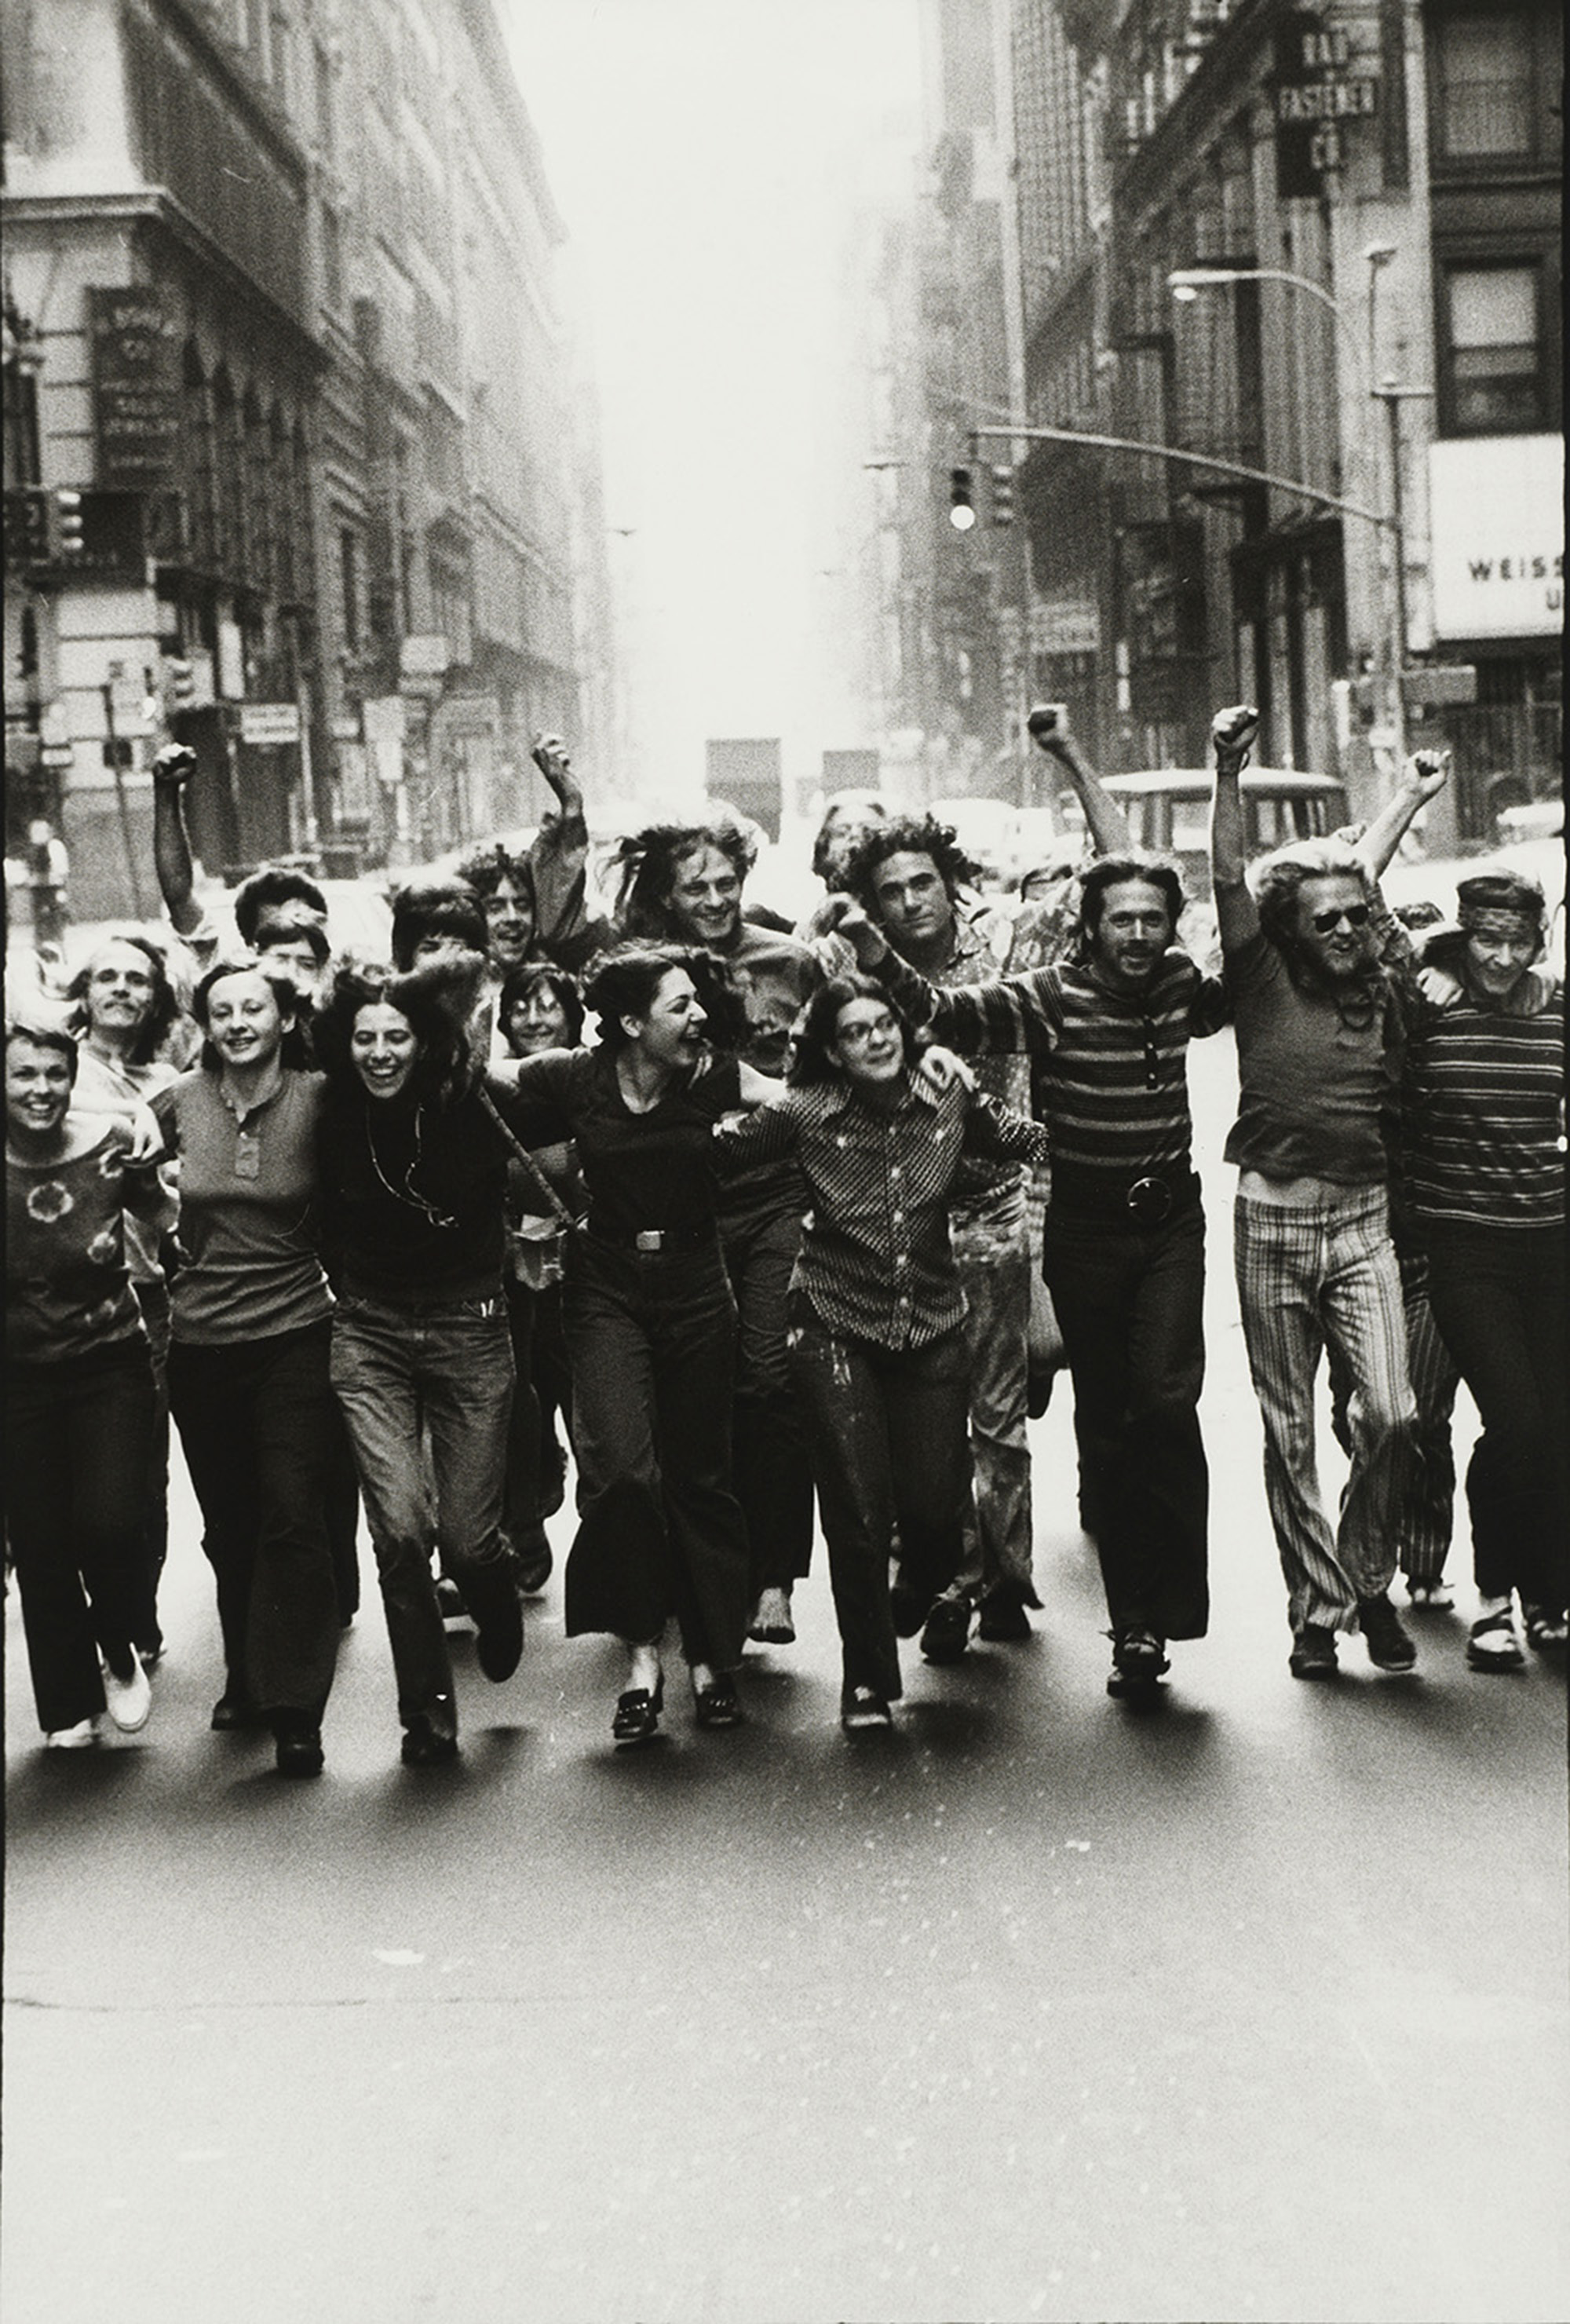 Gay Liberation Front Poster Image, 1969, gelatin silver print, purchased on The Charina Endowment Fund, The Morgan Library & Museum, 2013.108:1.76. © Peter Hujar Archive, LLC, courtesy Pace/MacGill Gallery, New York and Fraenkel Gallery, San Francisco.